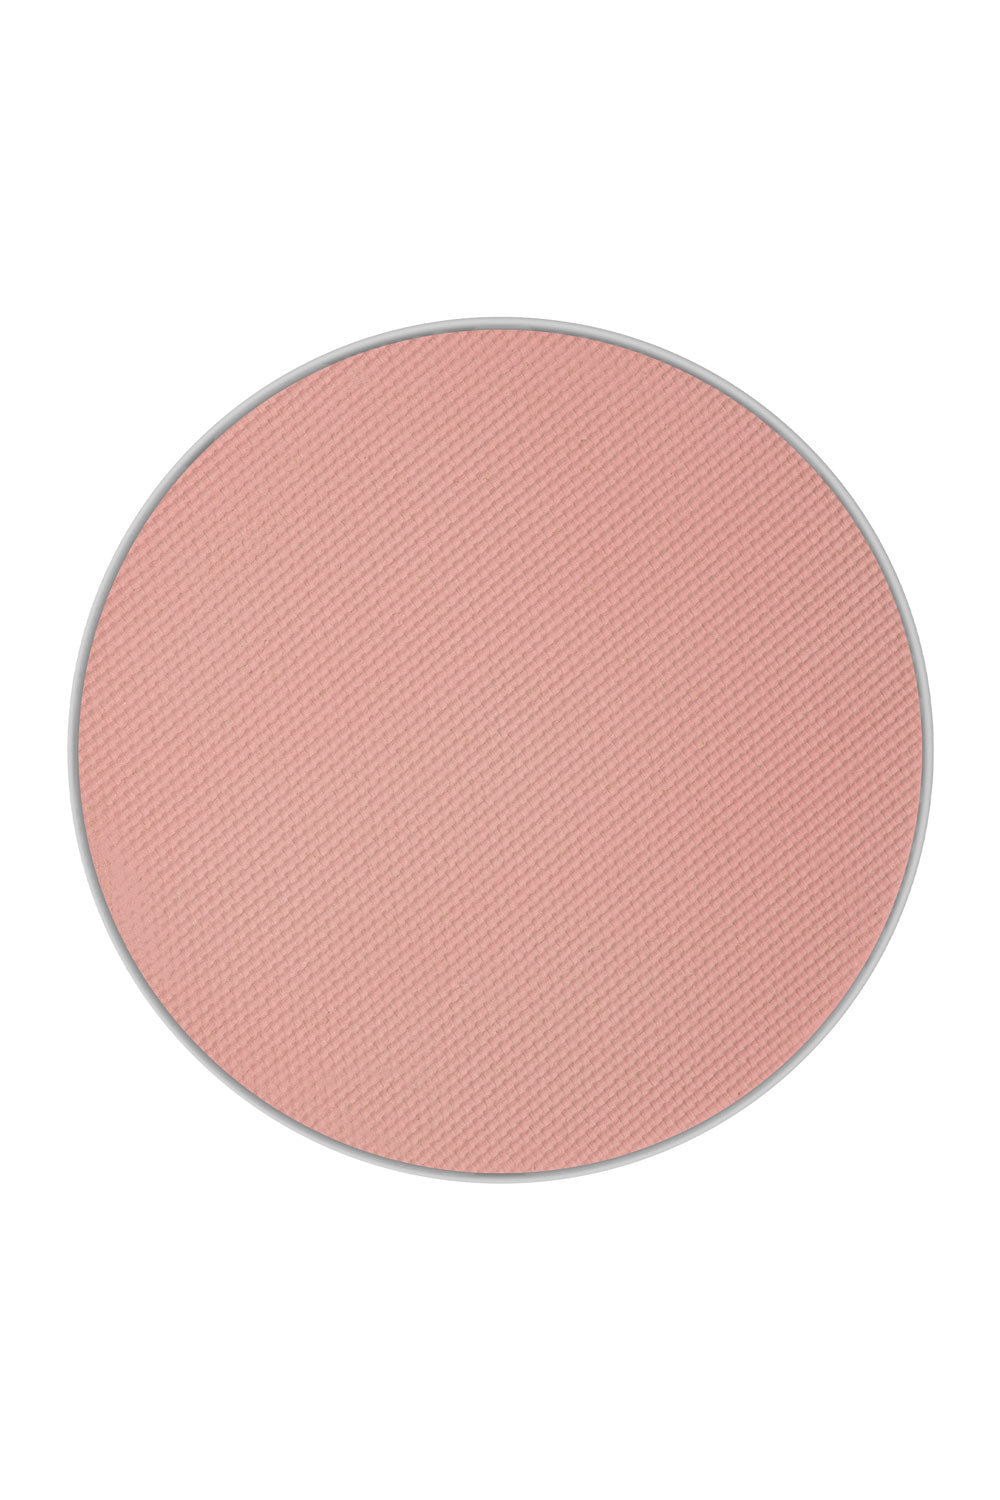 Polly - Type 2 Blush Pan